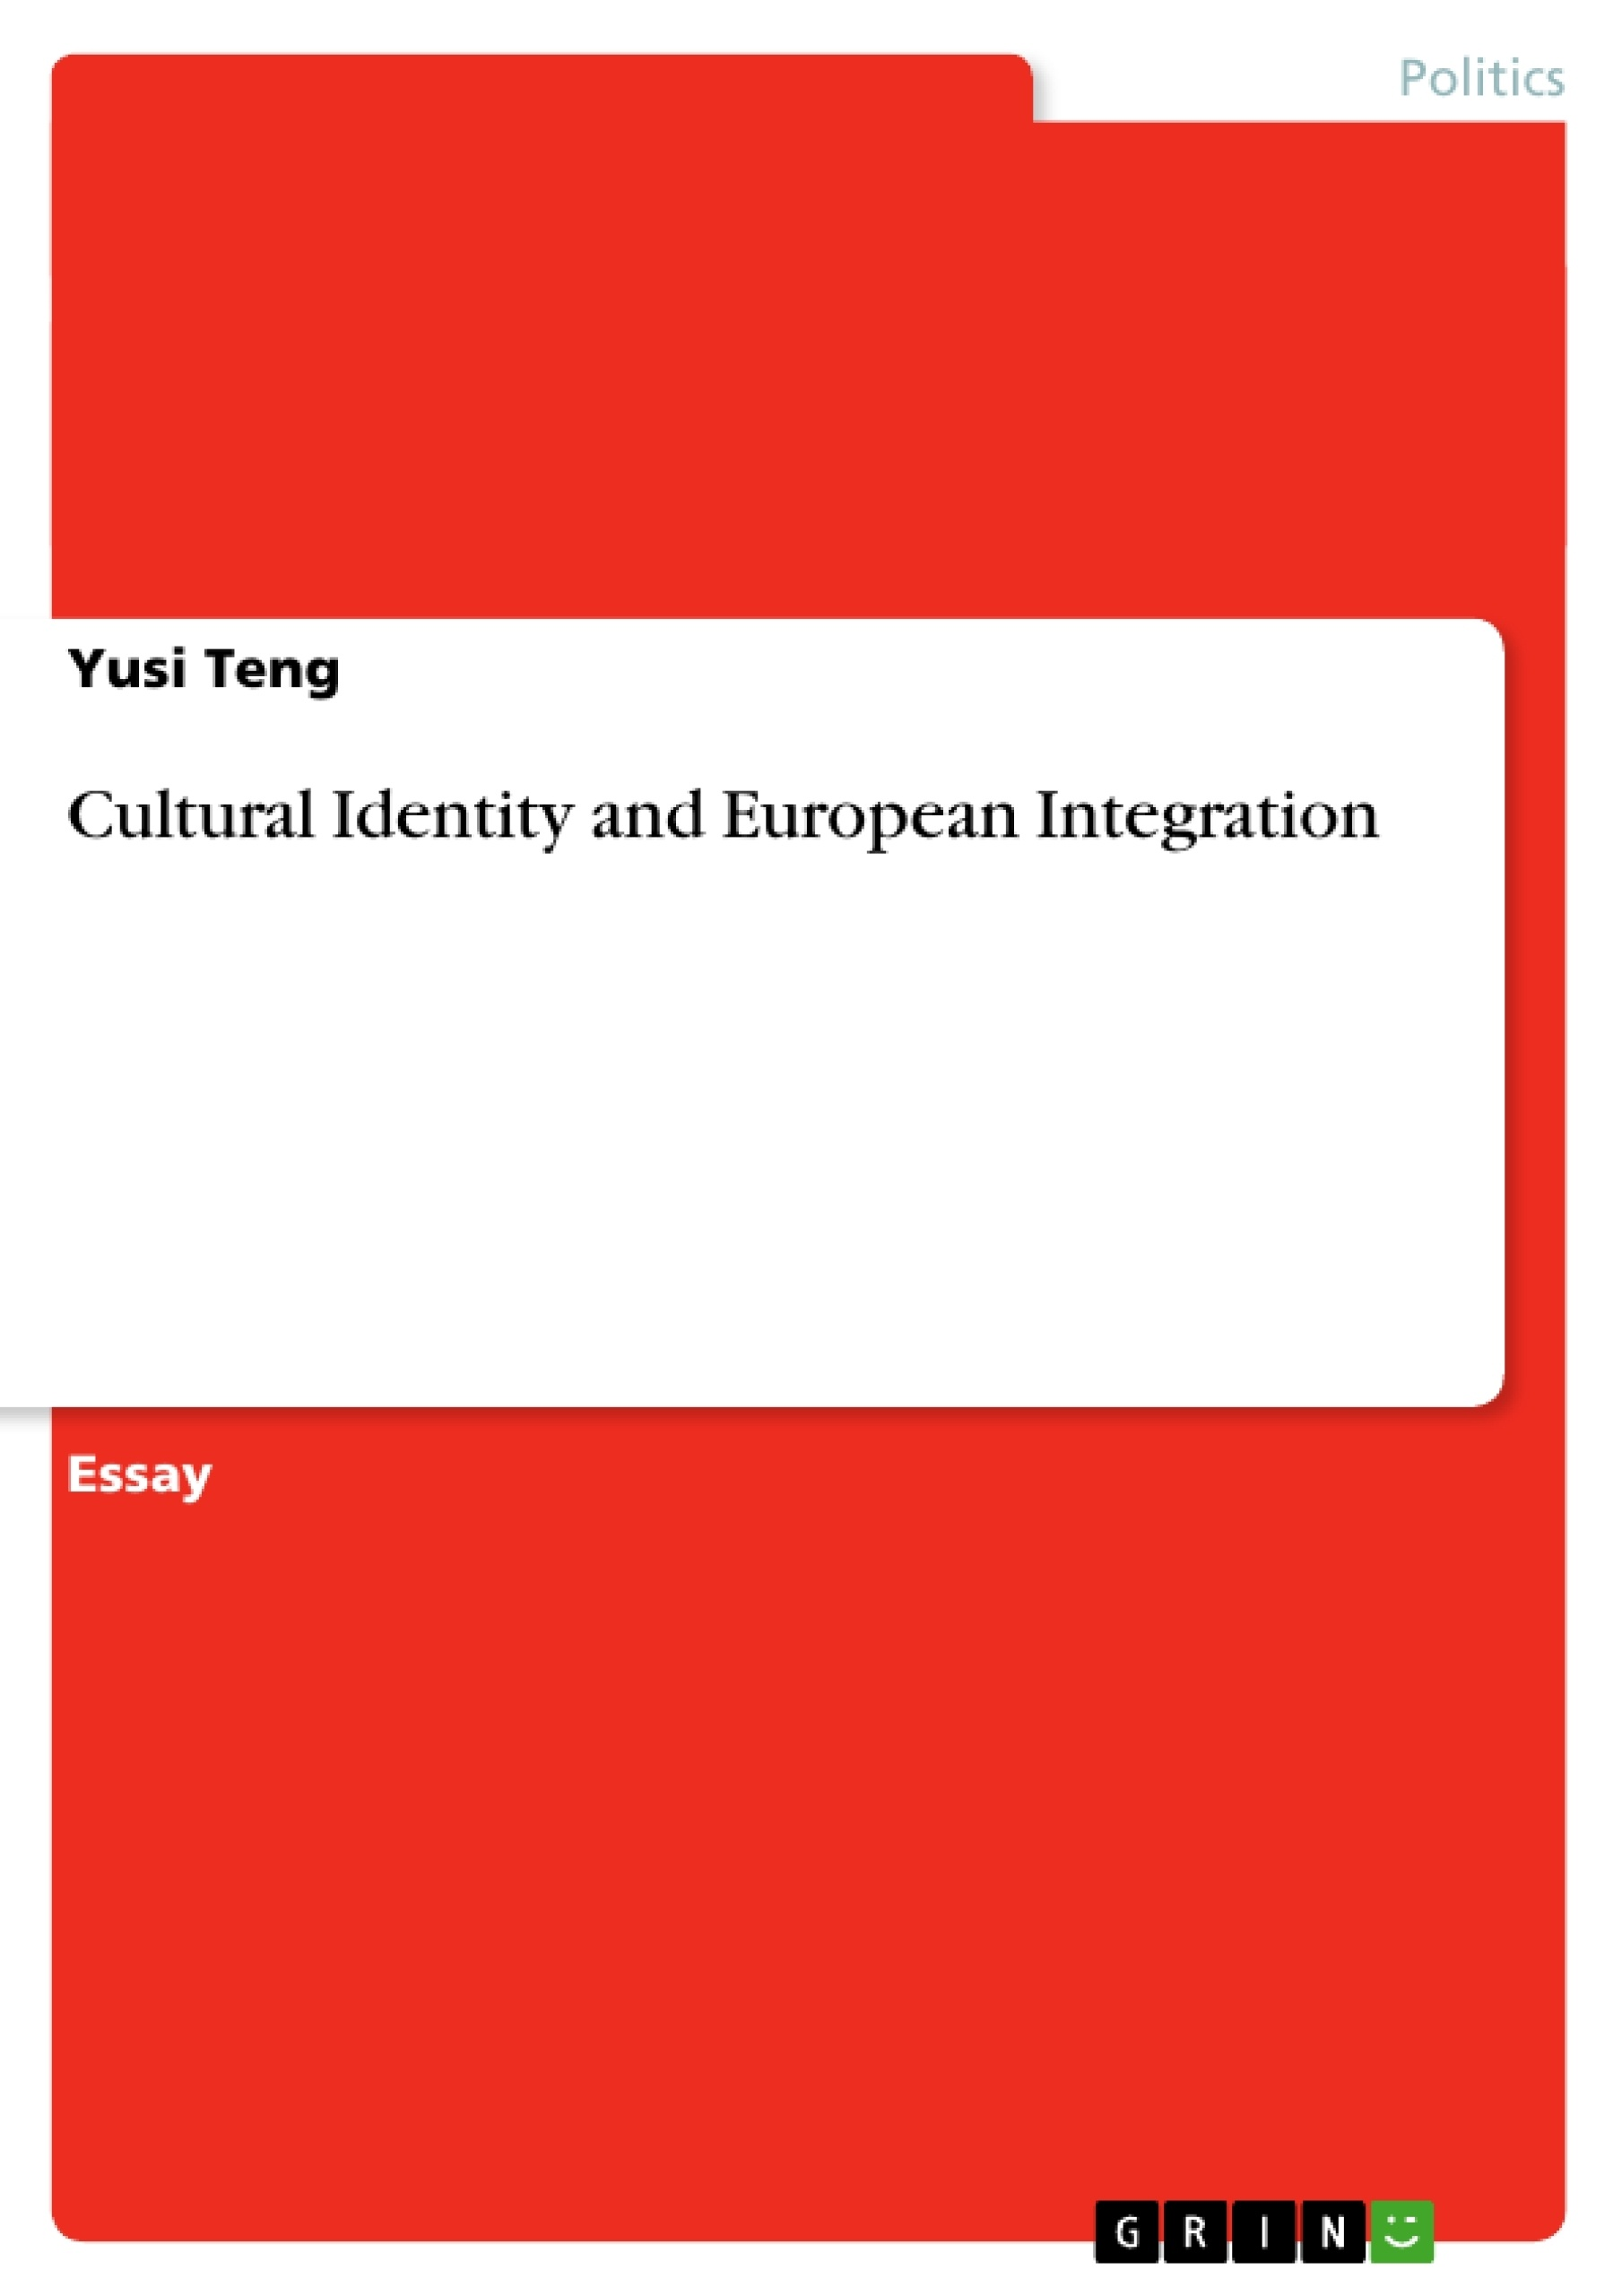 Title: Cultural Identity and European Integration